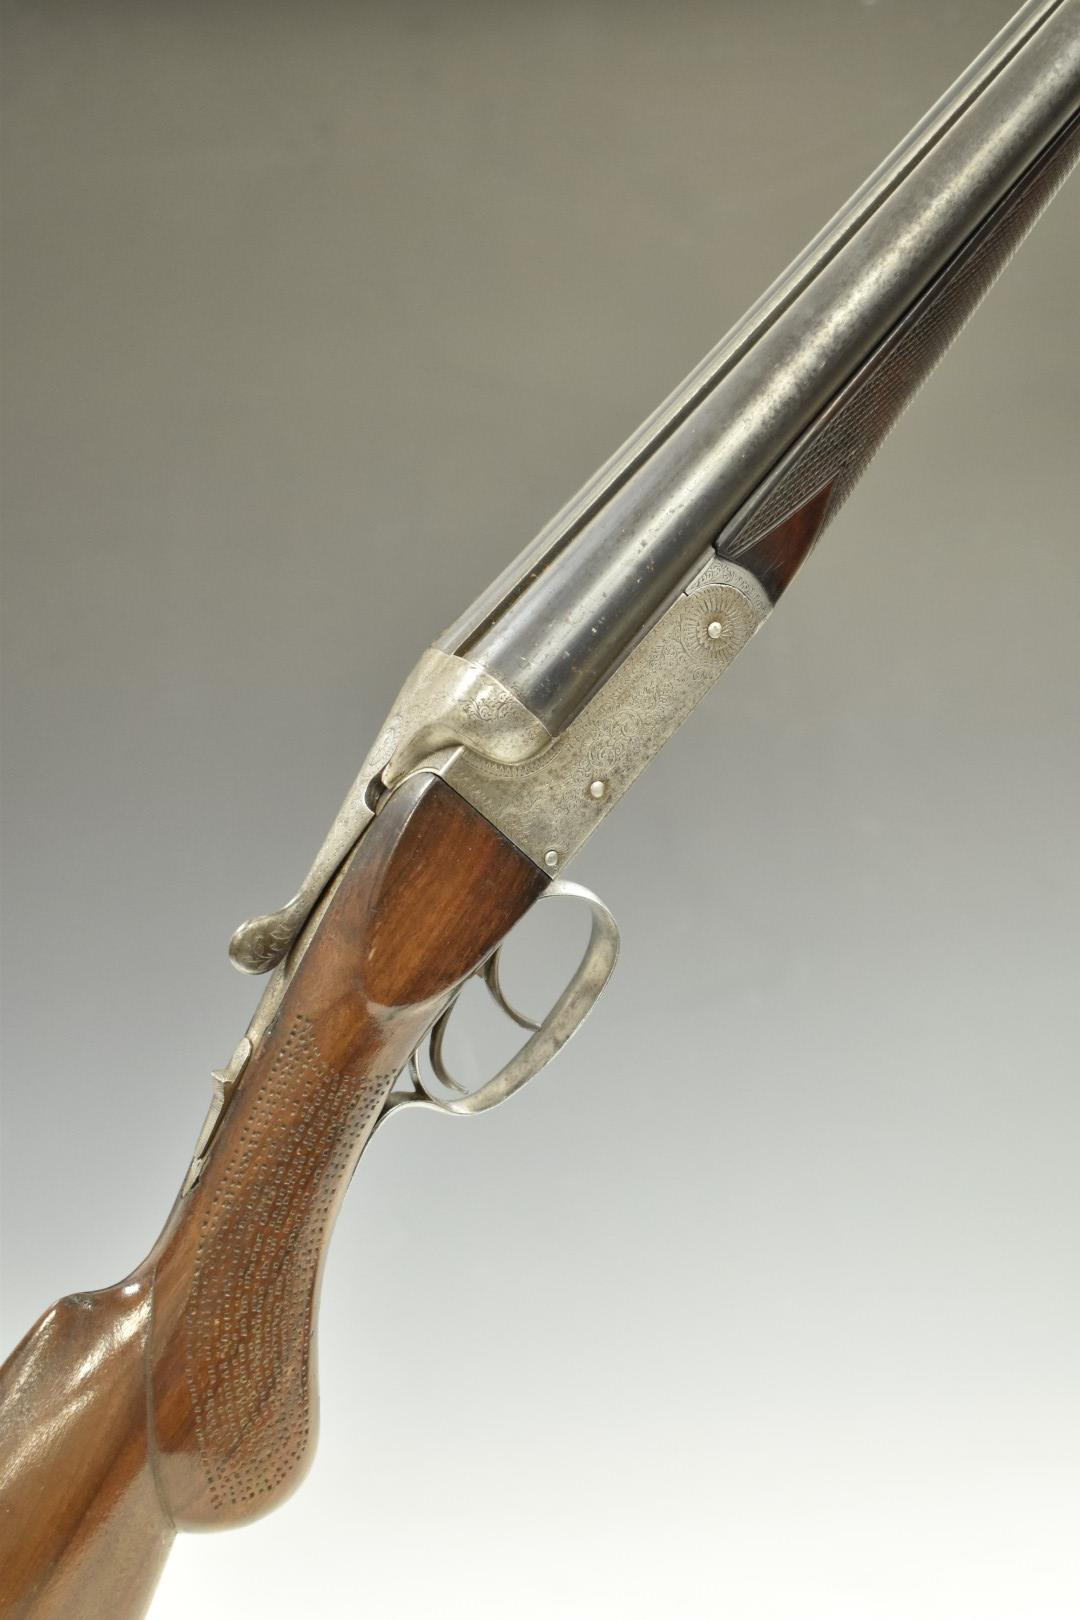 Herbert E Pollard & Co of Worcester 16 bore side by side shotgun with scrolling engraving to the